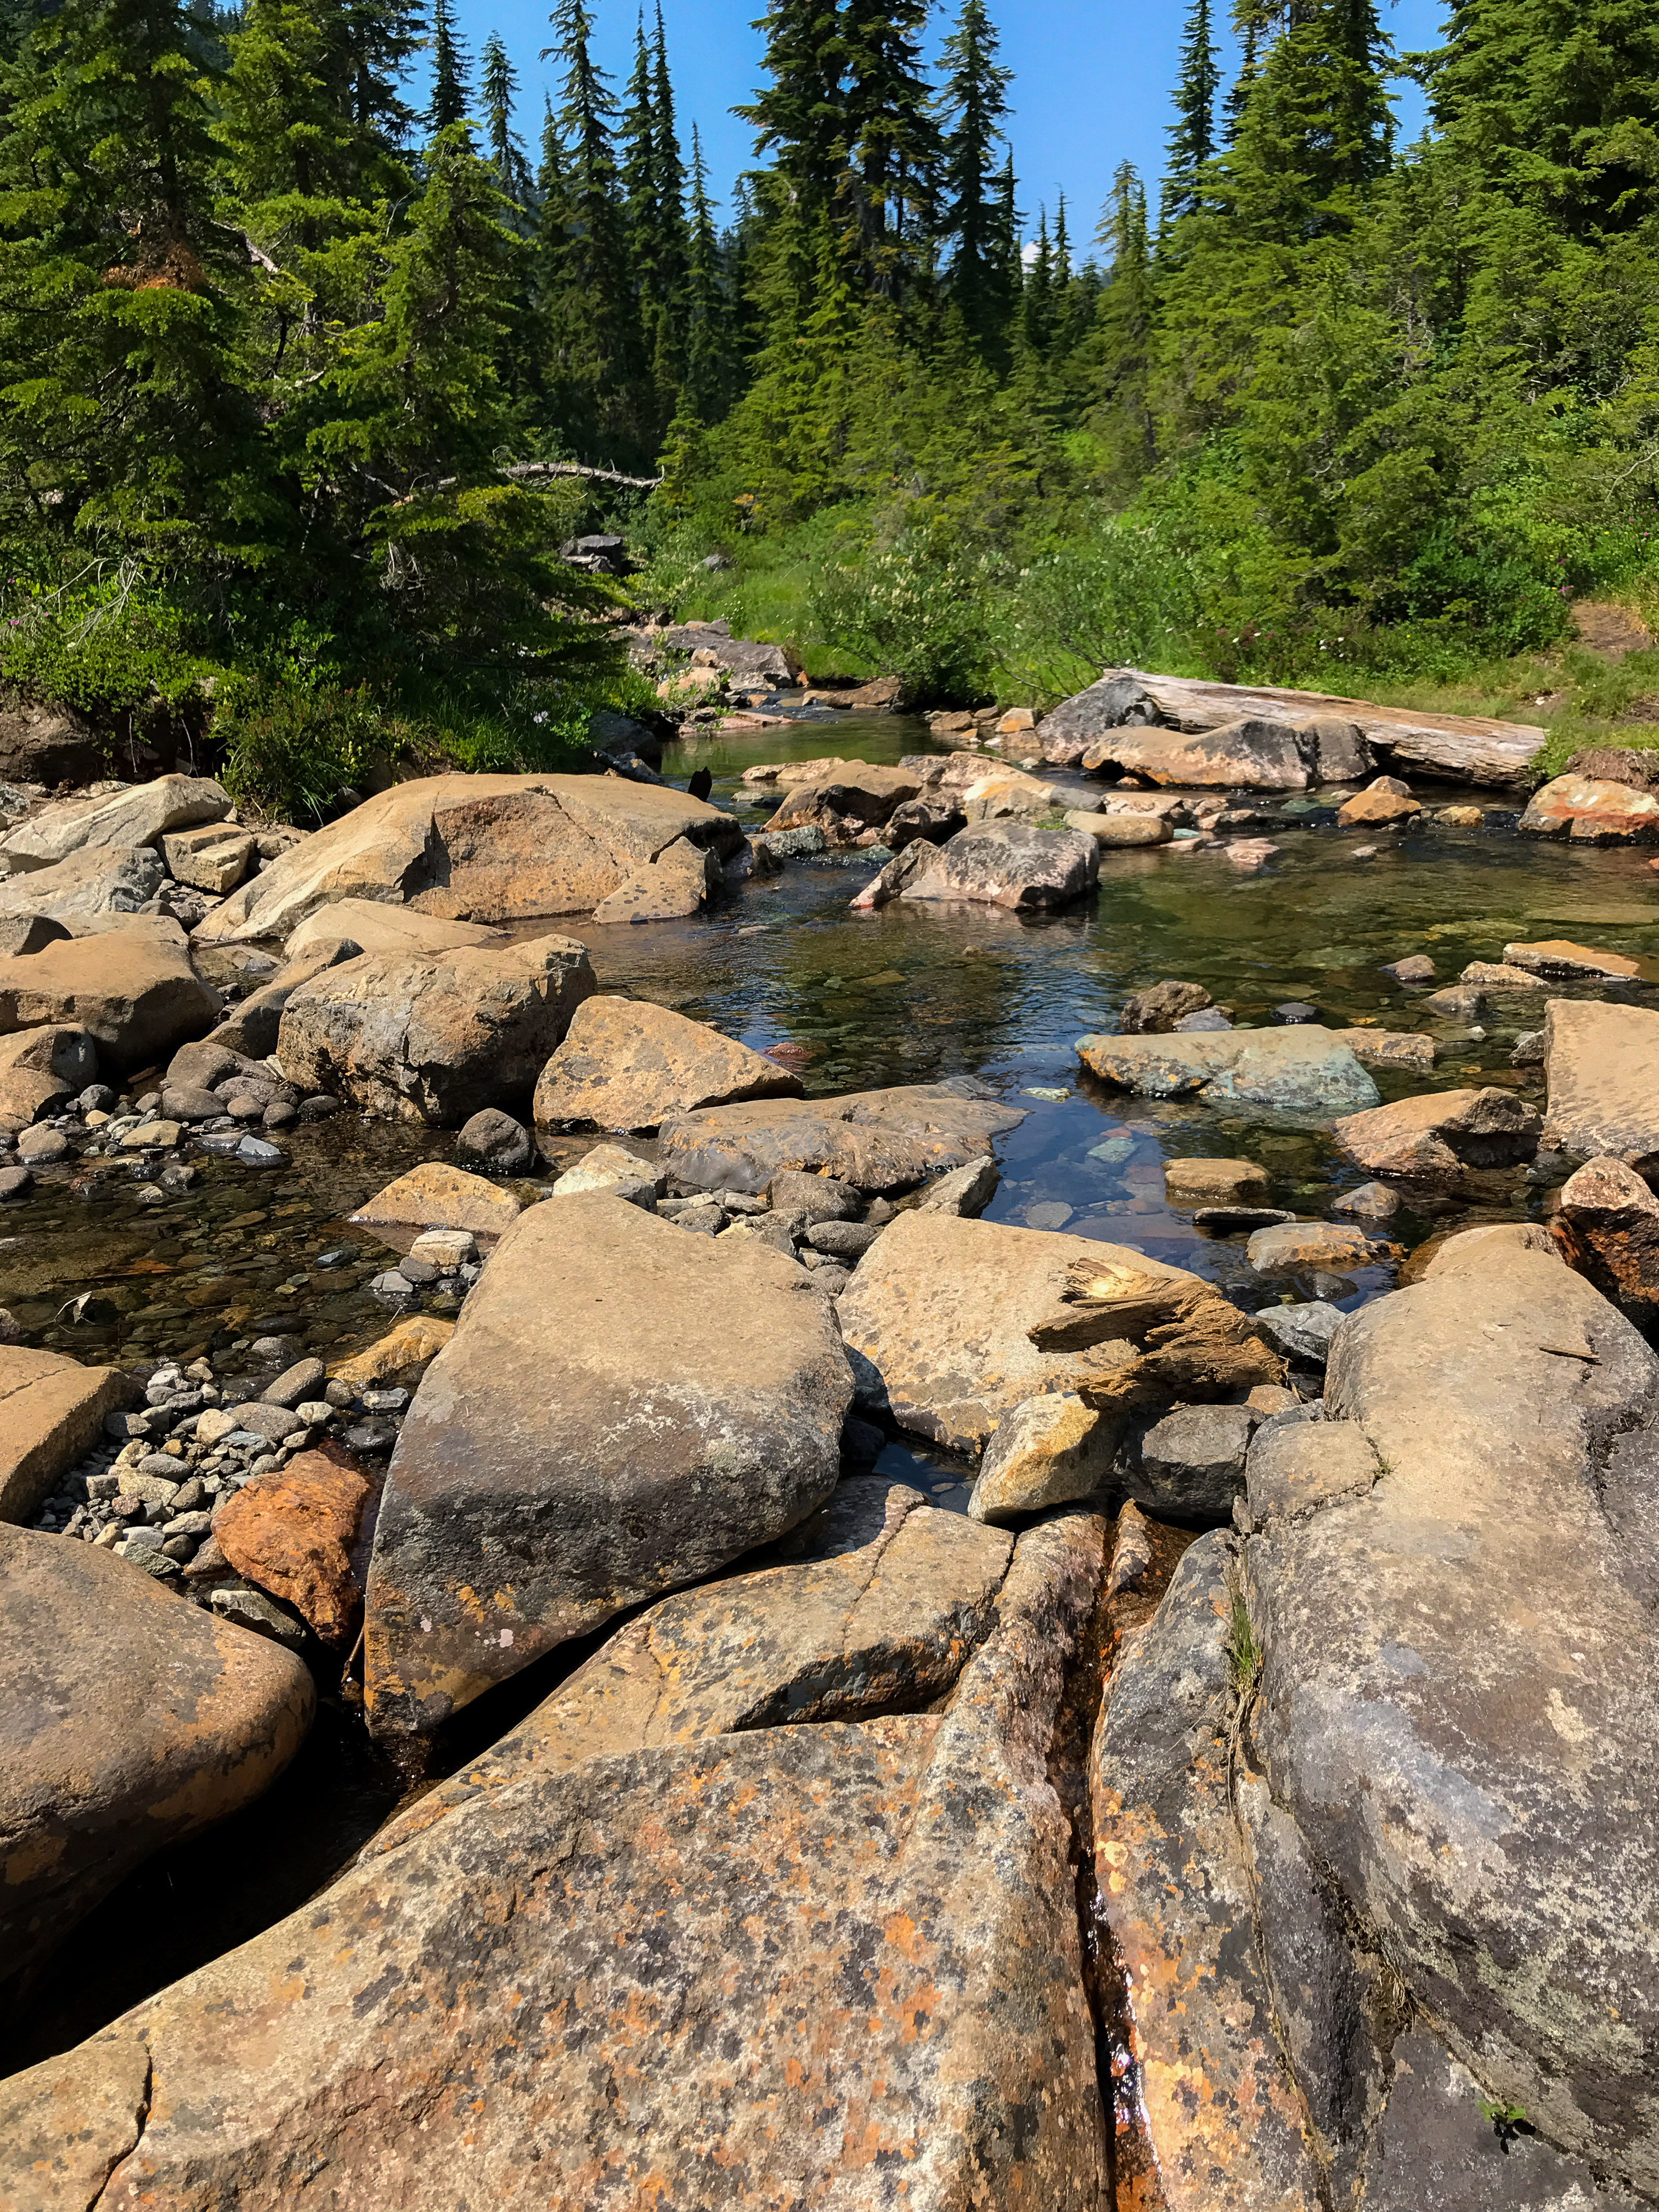 One of the many streams in the meadow. Great place to cool off!